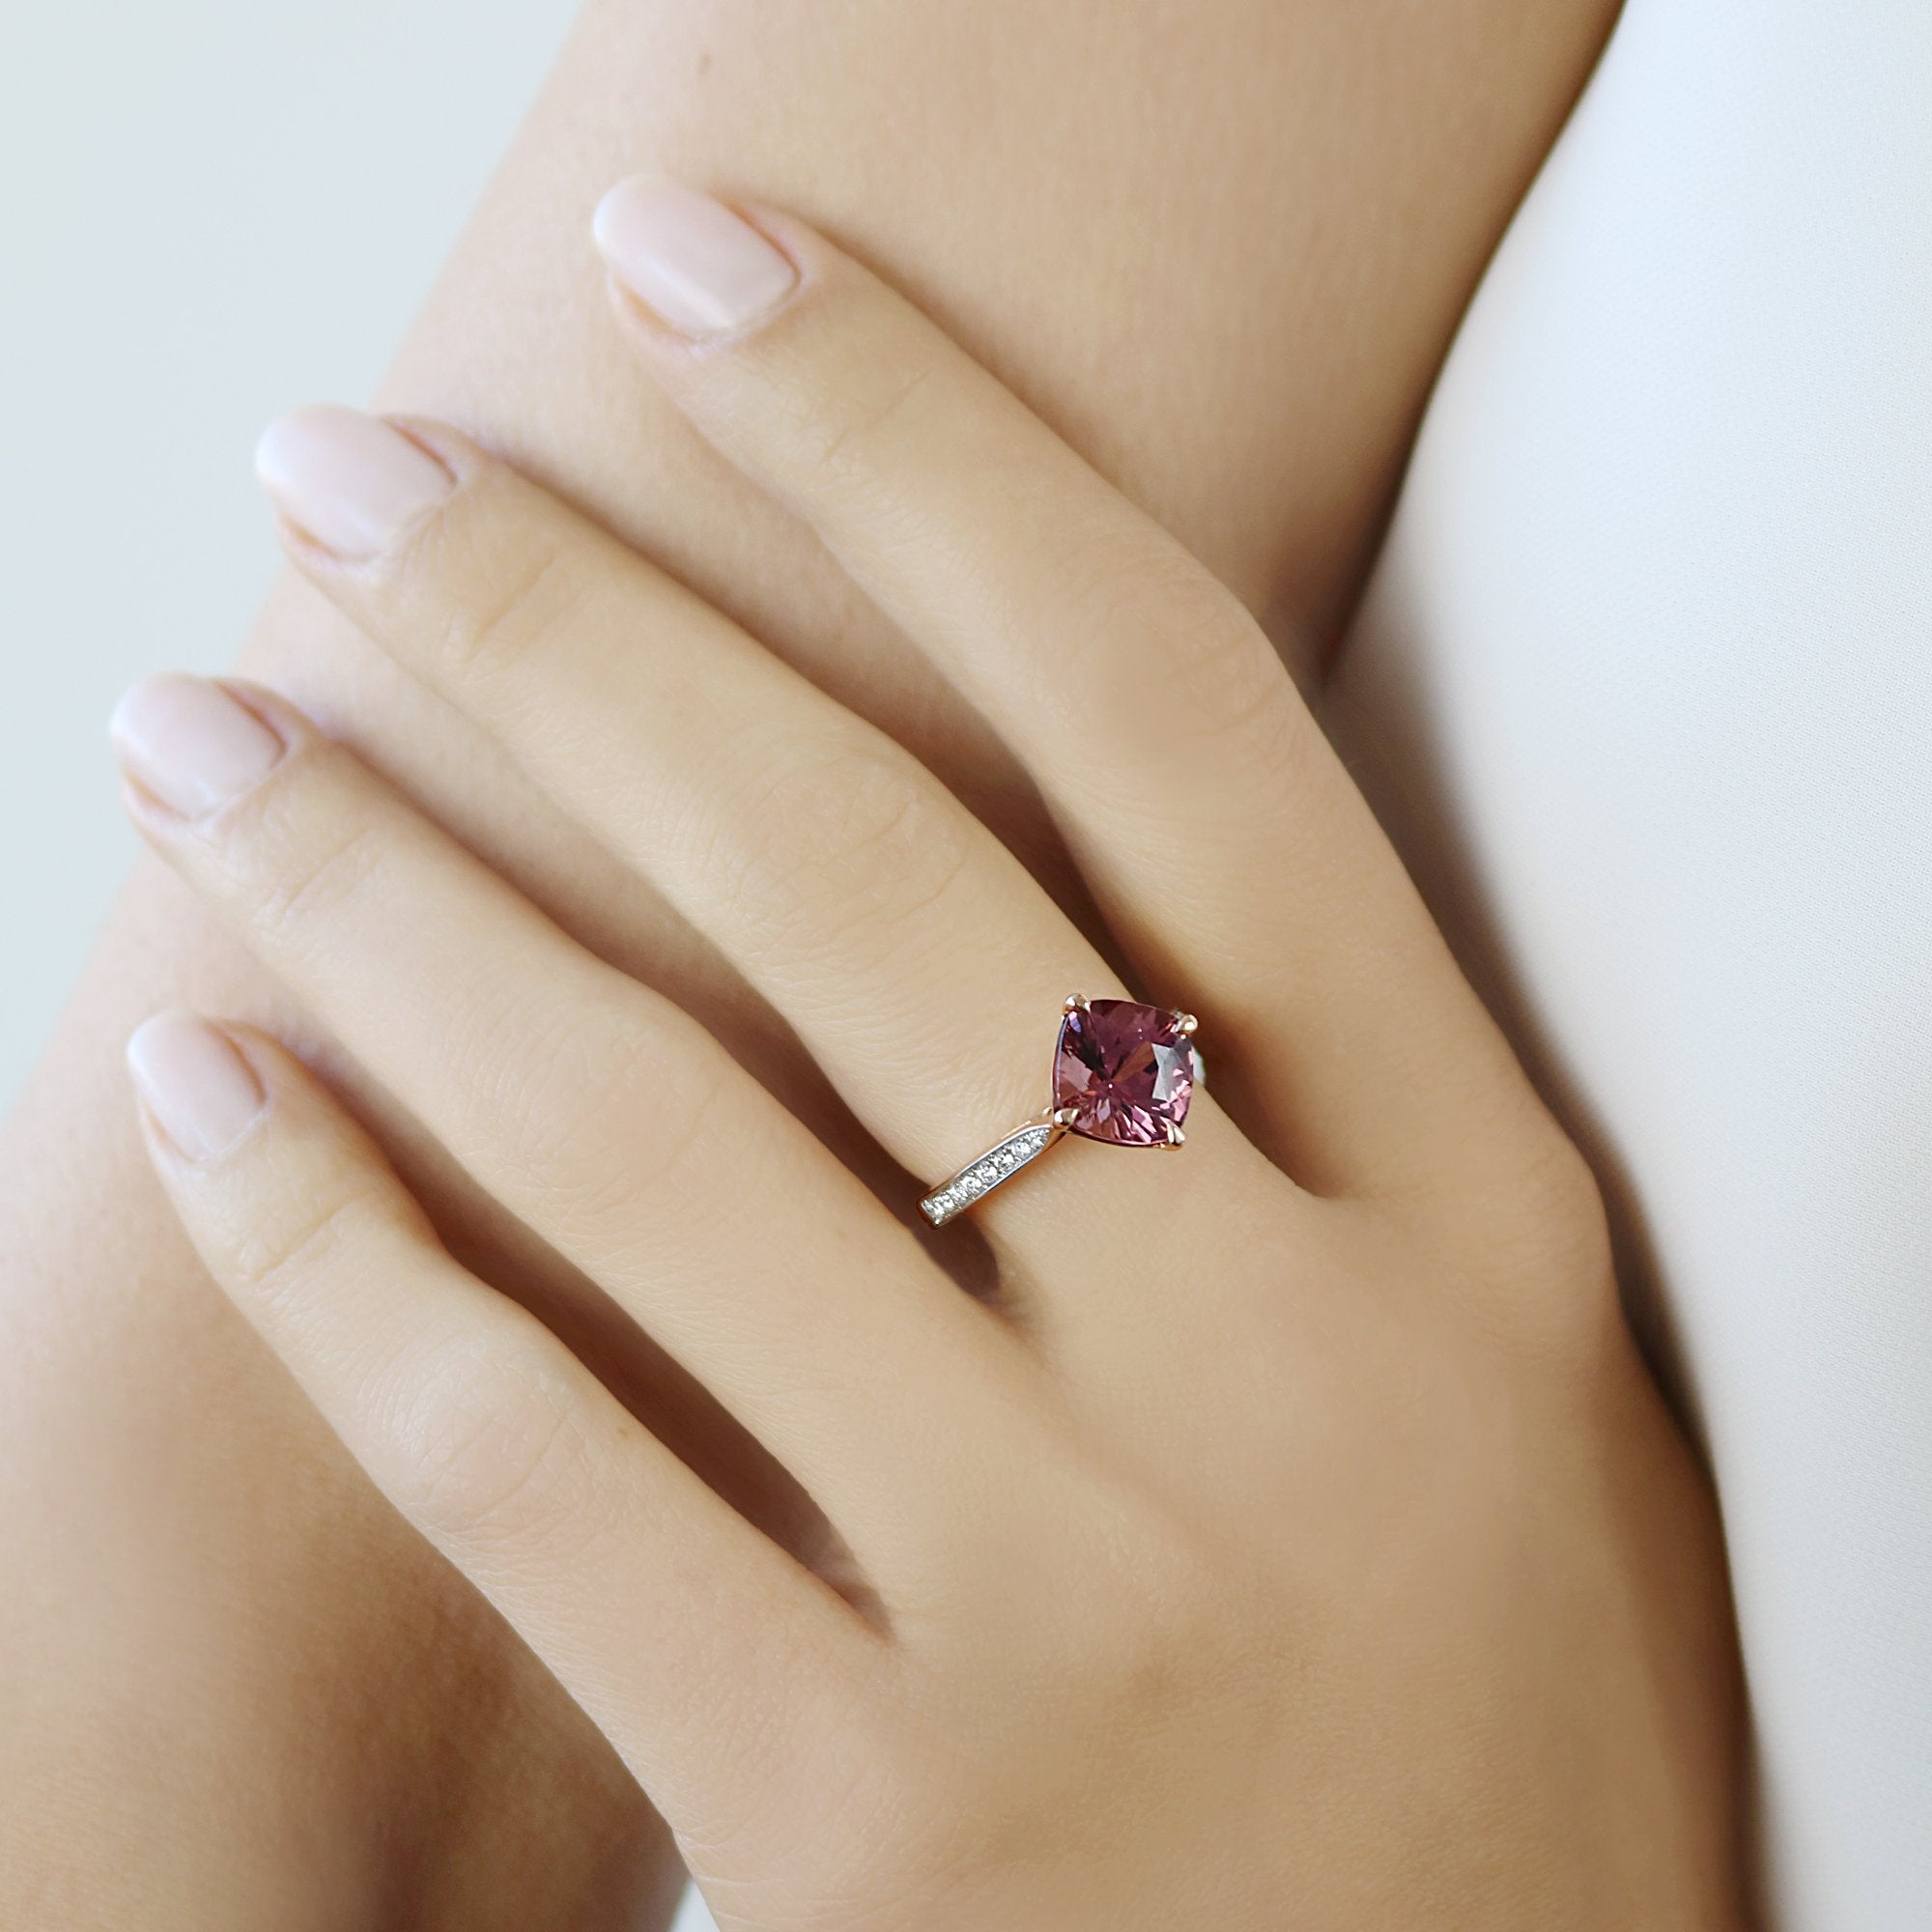 rings ring best on engagement ravishing images rhodolite colorsofeden pinterest garnet